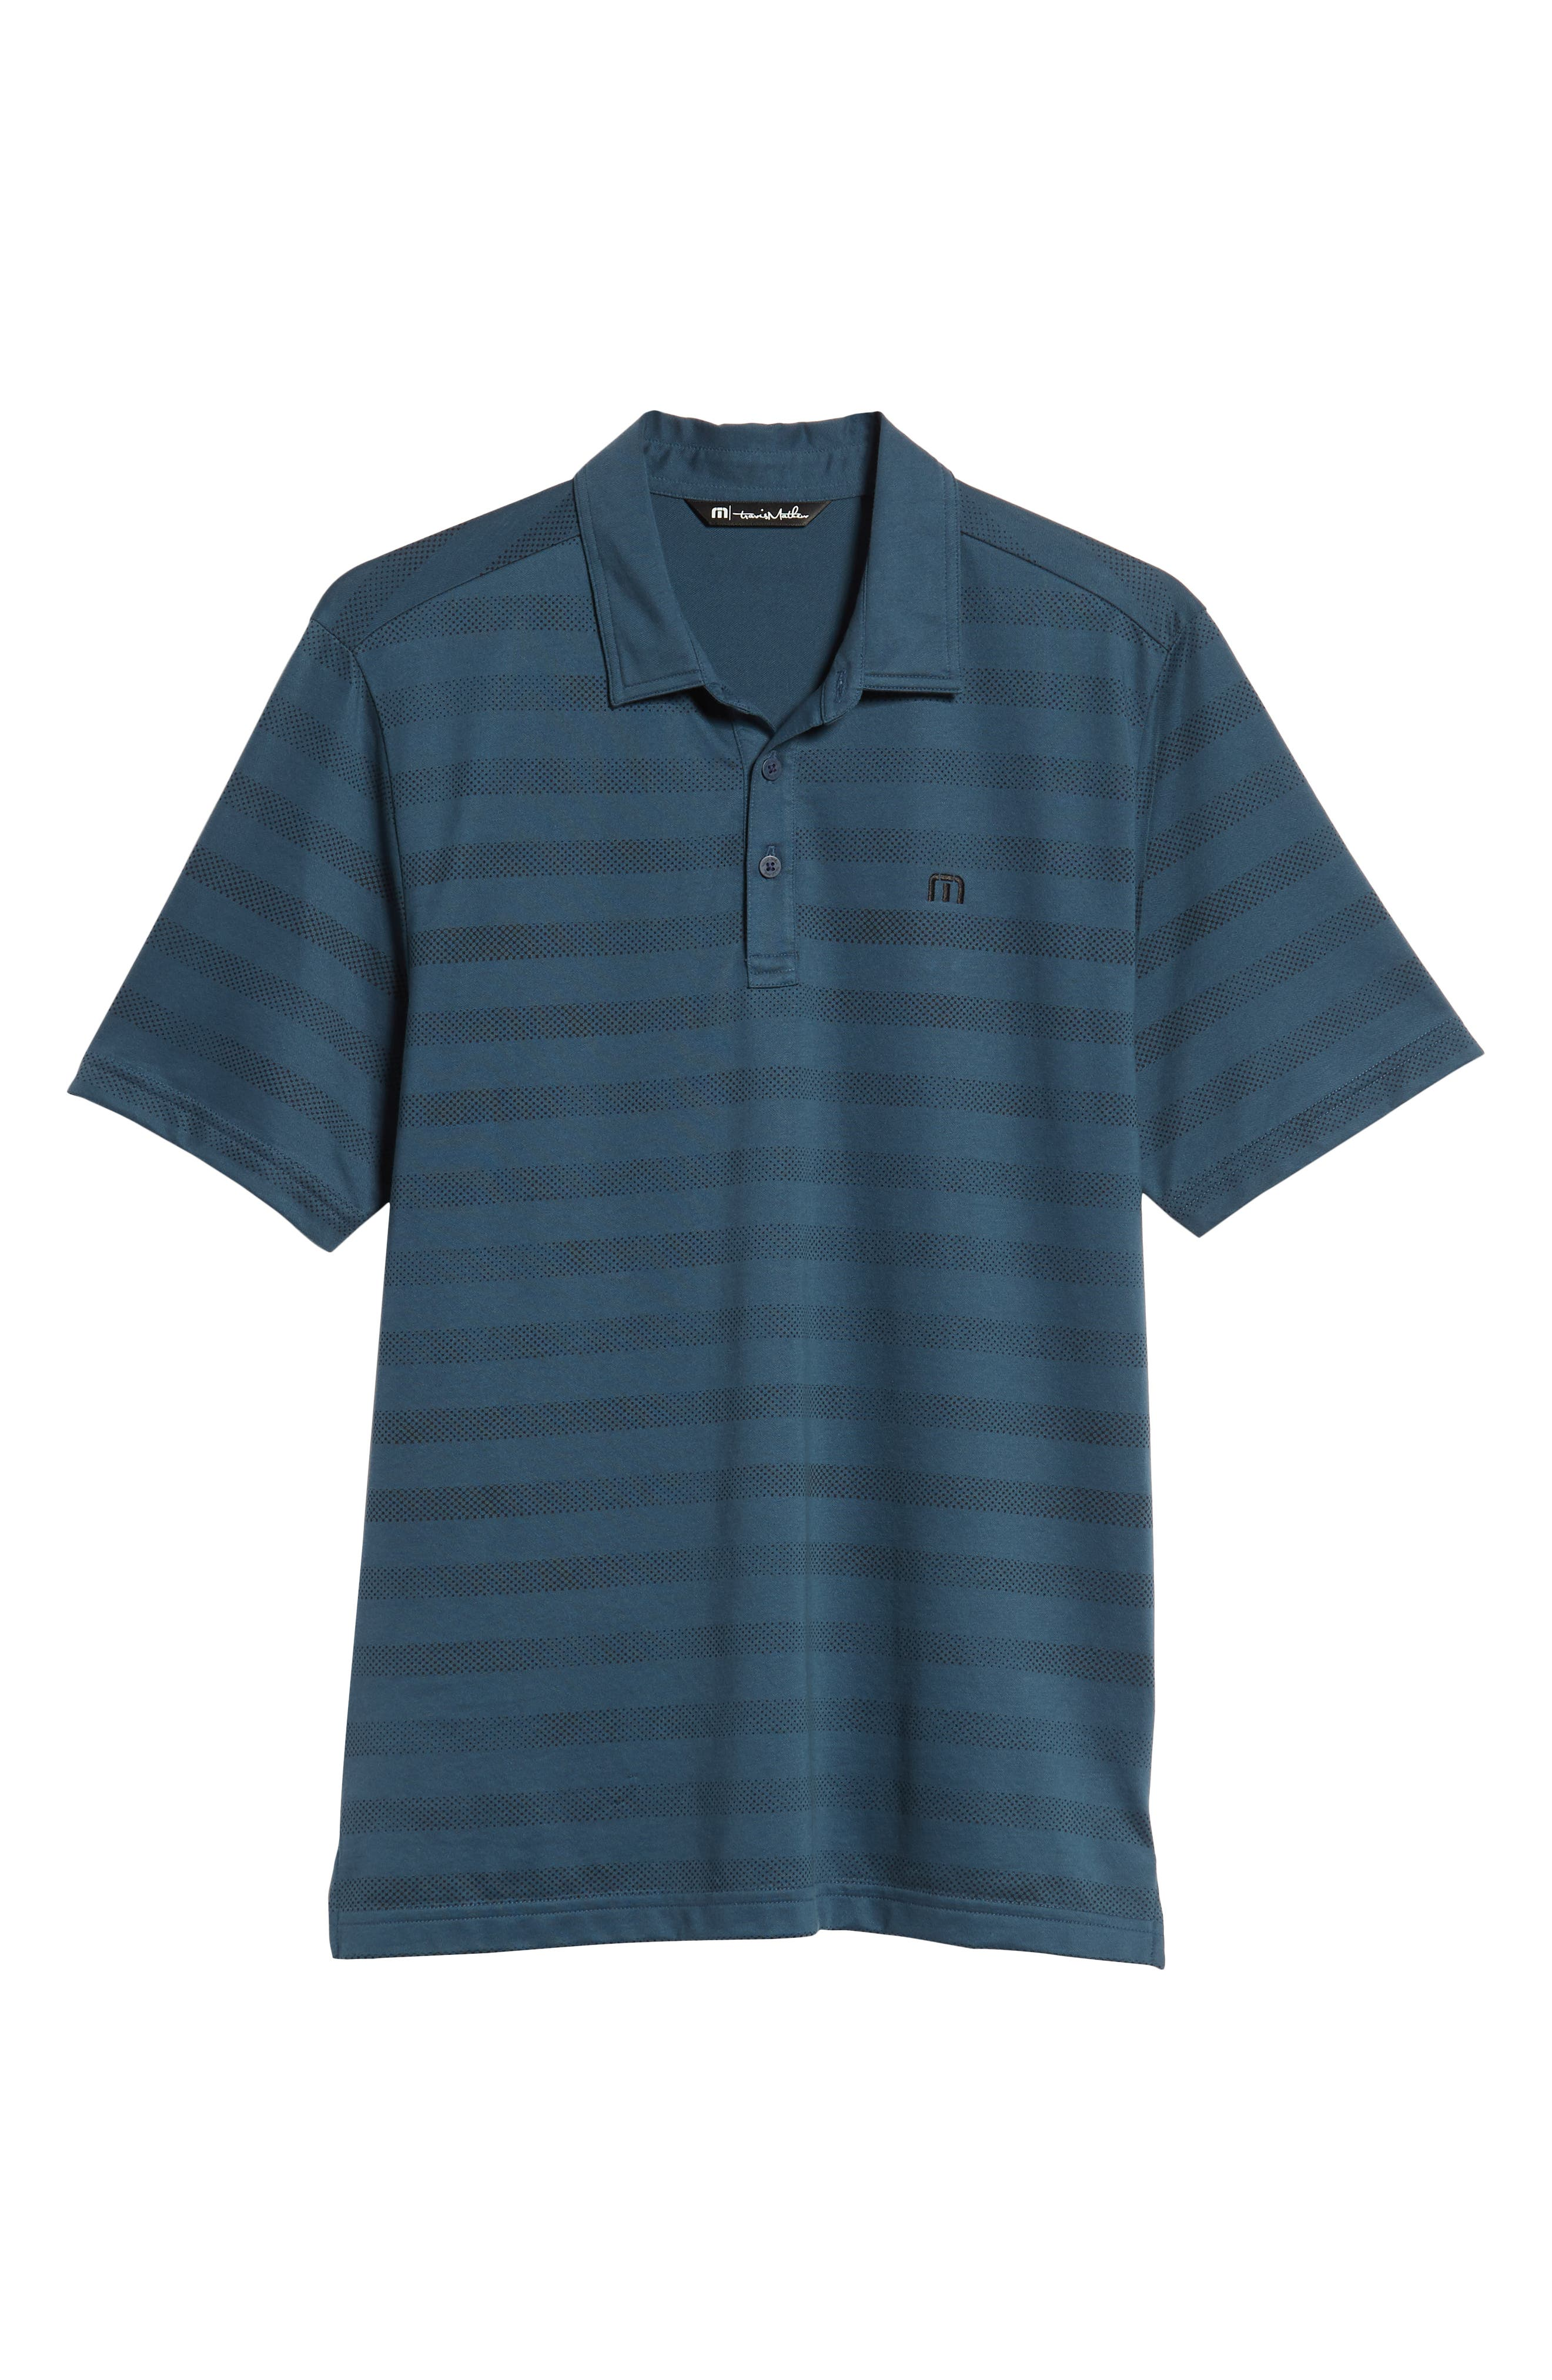 Dolphinantly Regular Fit Polo,                             Alternate thumbnail 6, color,                             BLUE WING TEAL